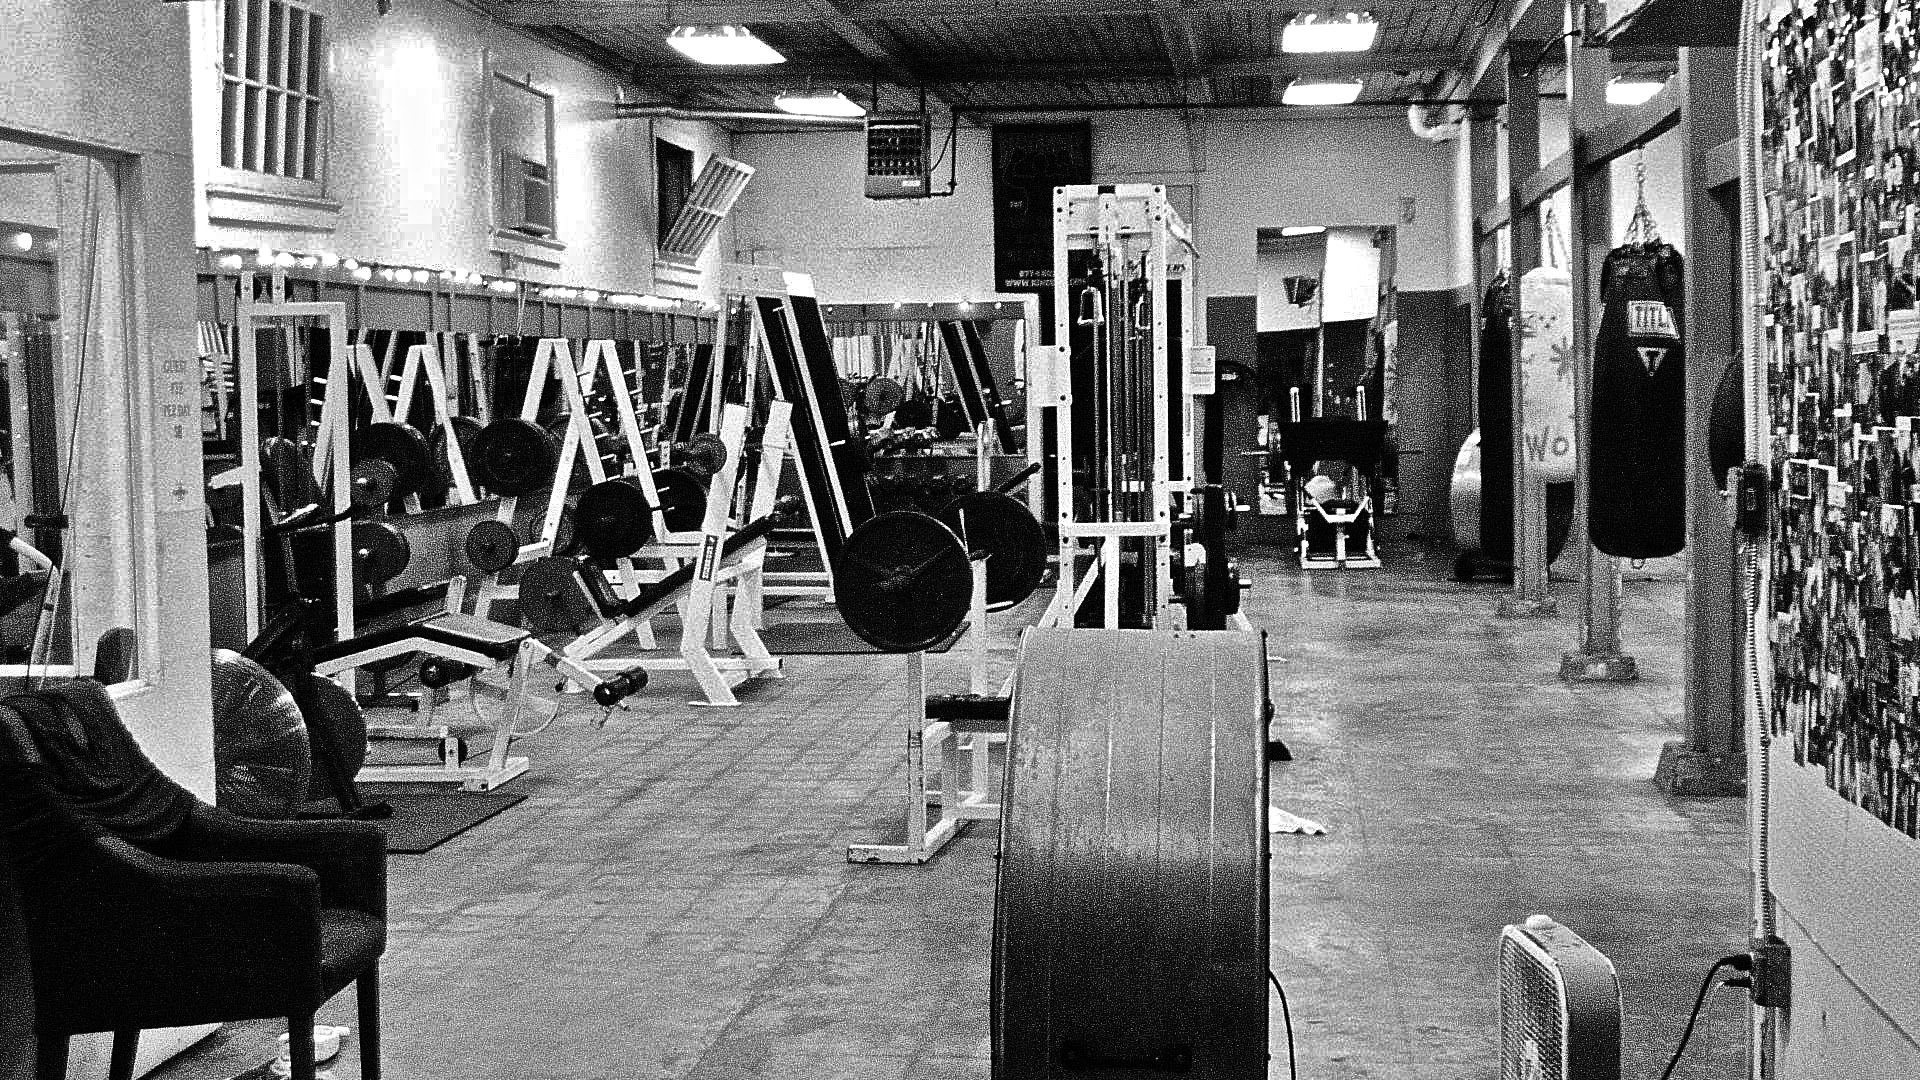 Weight Lifting Wallpaper Iphone Gym Wallpaper 183 ① Download Free Beautiful Hd Wallpapers For